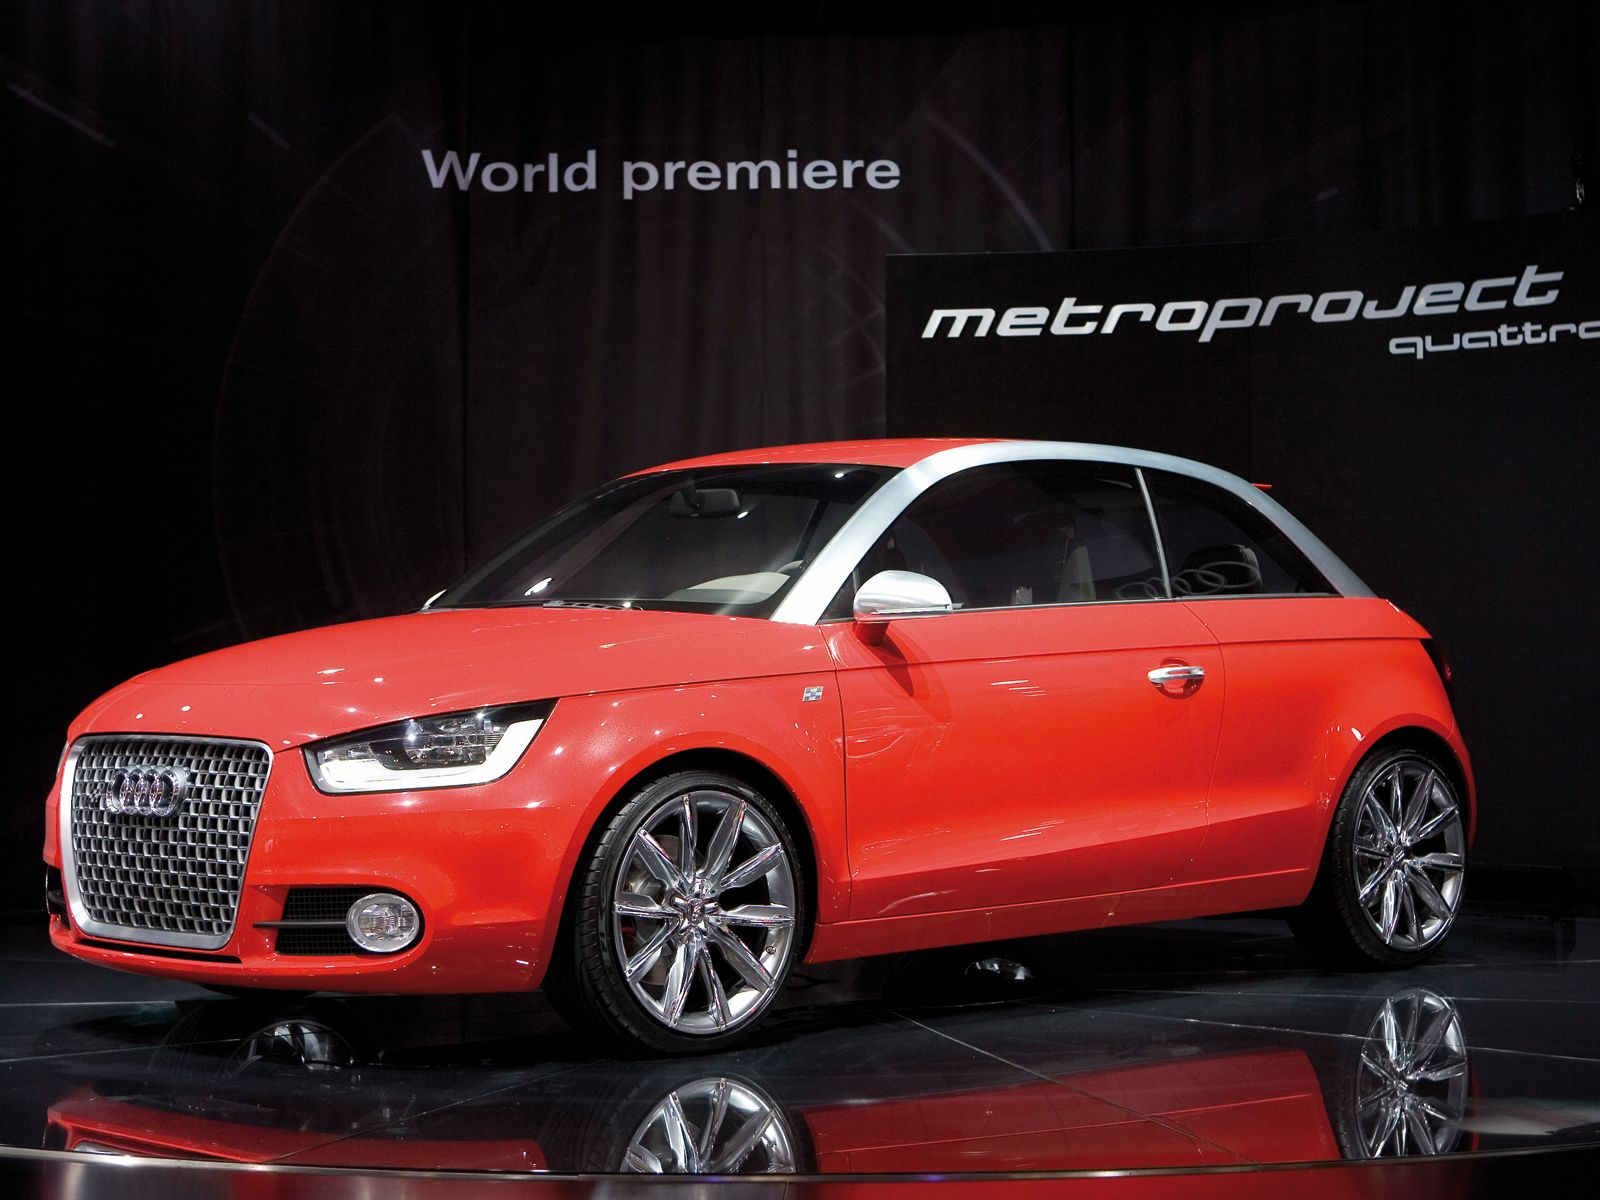 Audi Metroproject Quattro photo 50883